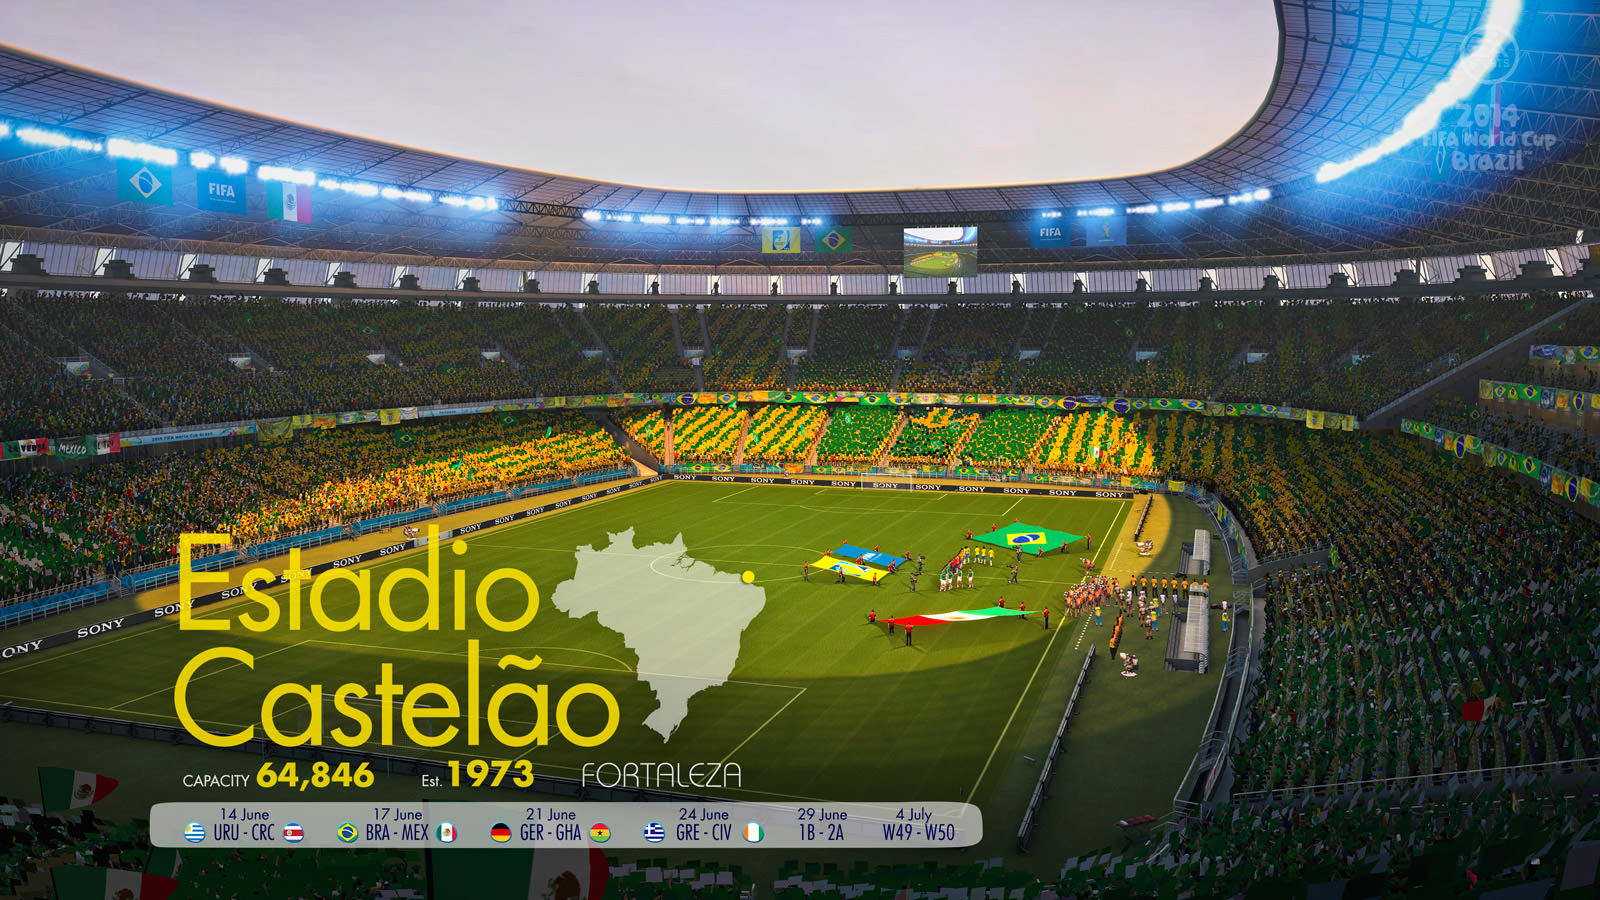 fifa world cup 2014 in brazil History of 2014 fifa world cup: football 2014 brazil world cup winner (germany) and runner-up (argentina) know all about brazil world cup 2014, goals scored, qualified team, matches played in the .